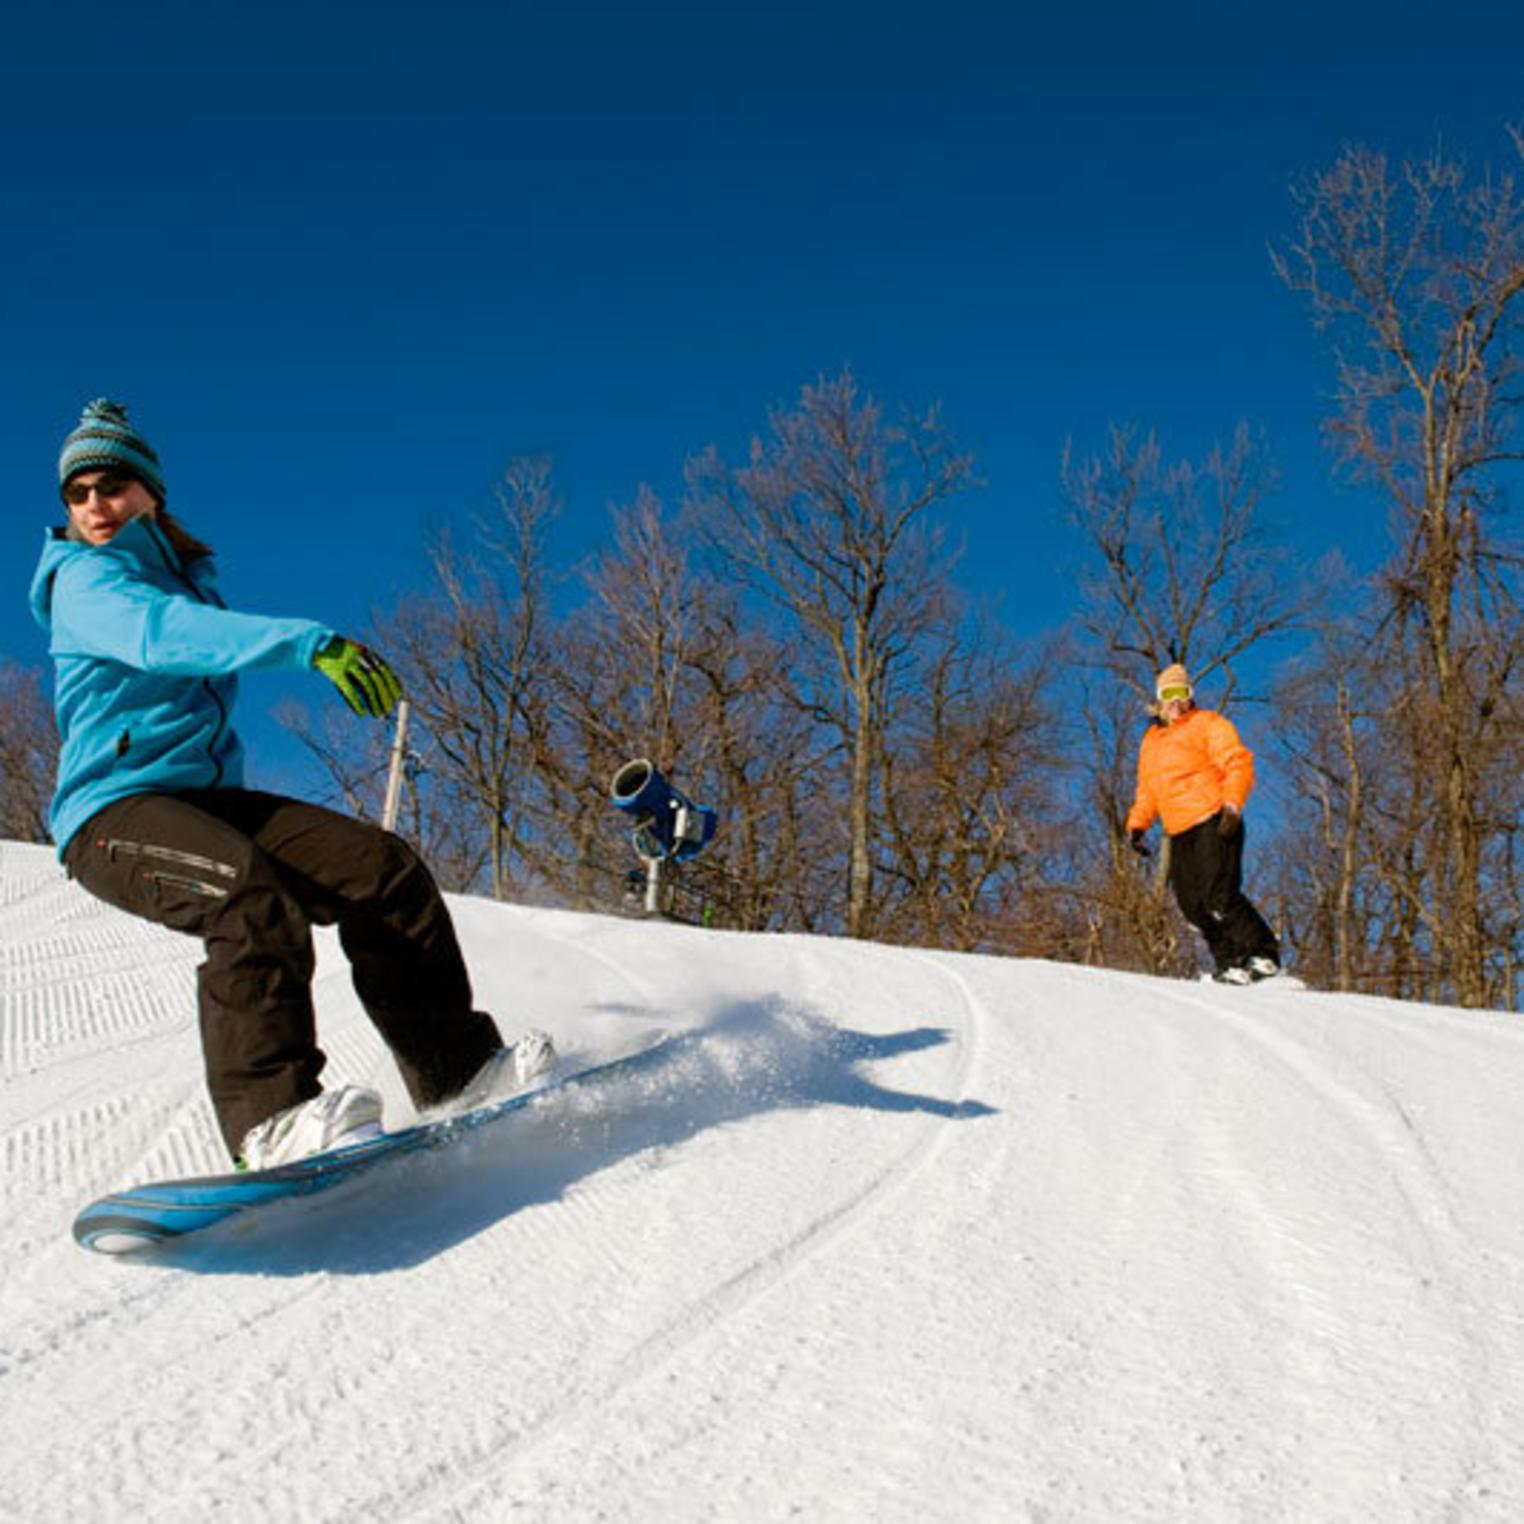 Snowboarding at Roundtop Mountain Resort